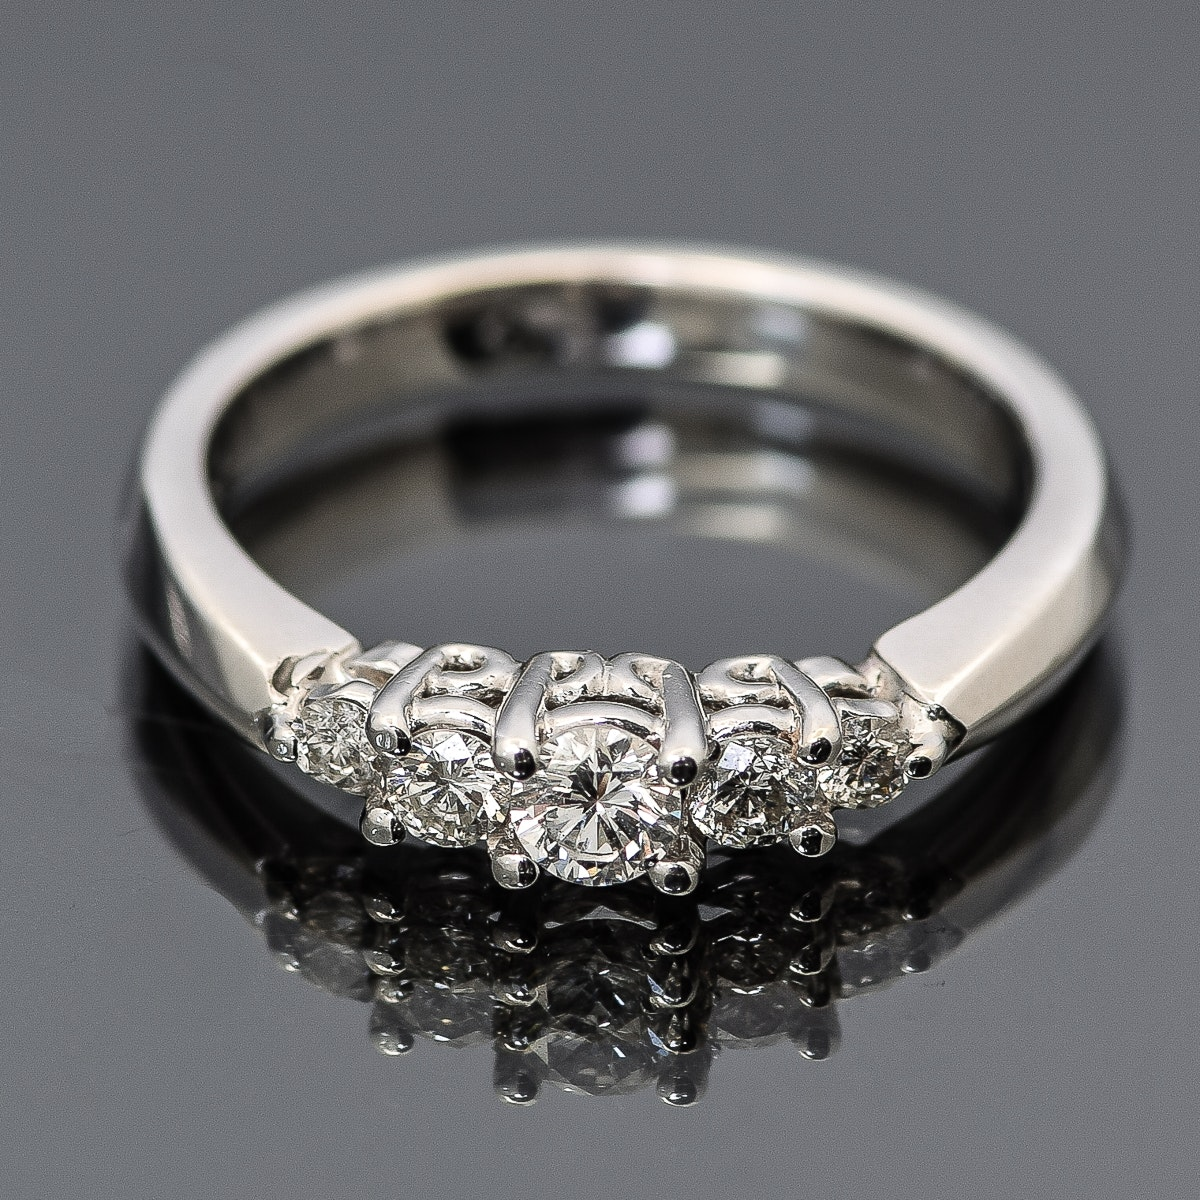 14K White Gold and Graduated Diamond Ring